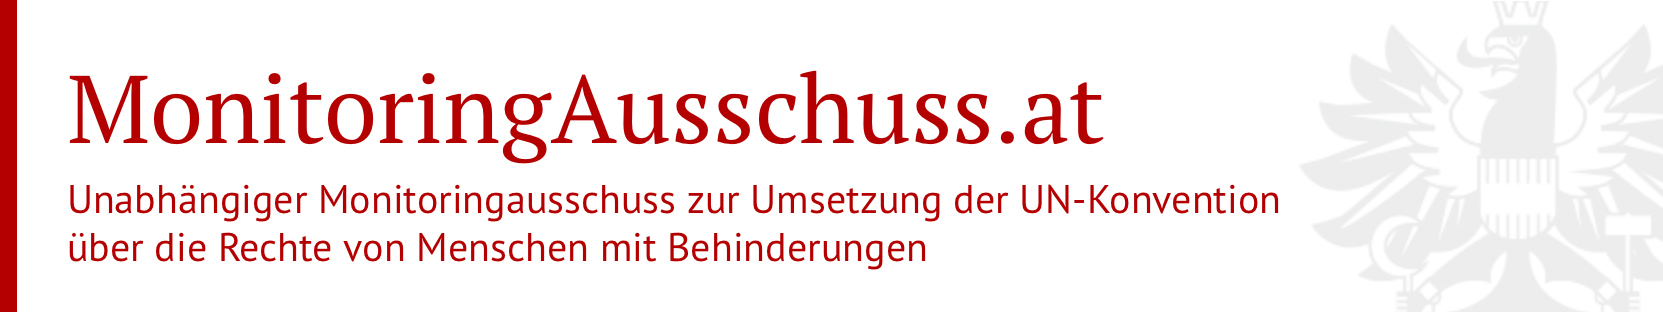 Monitoringausschuss.at